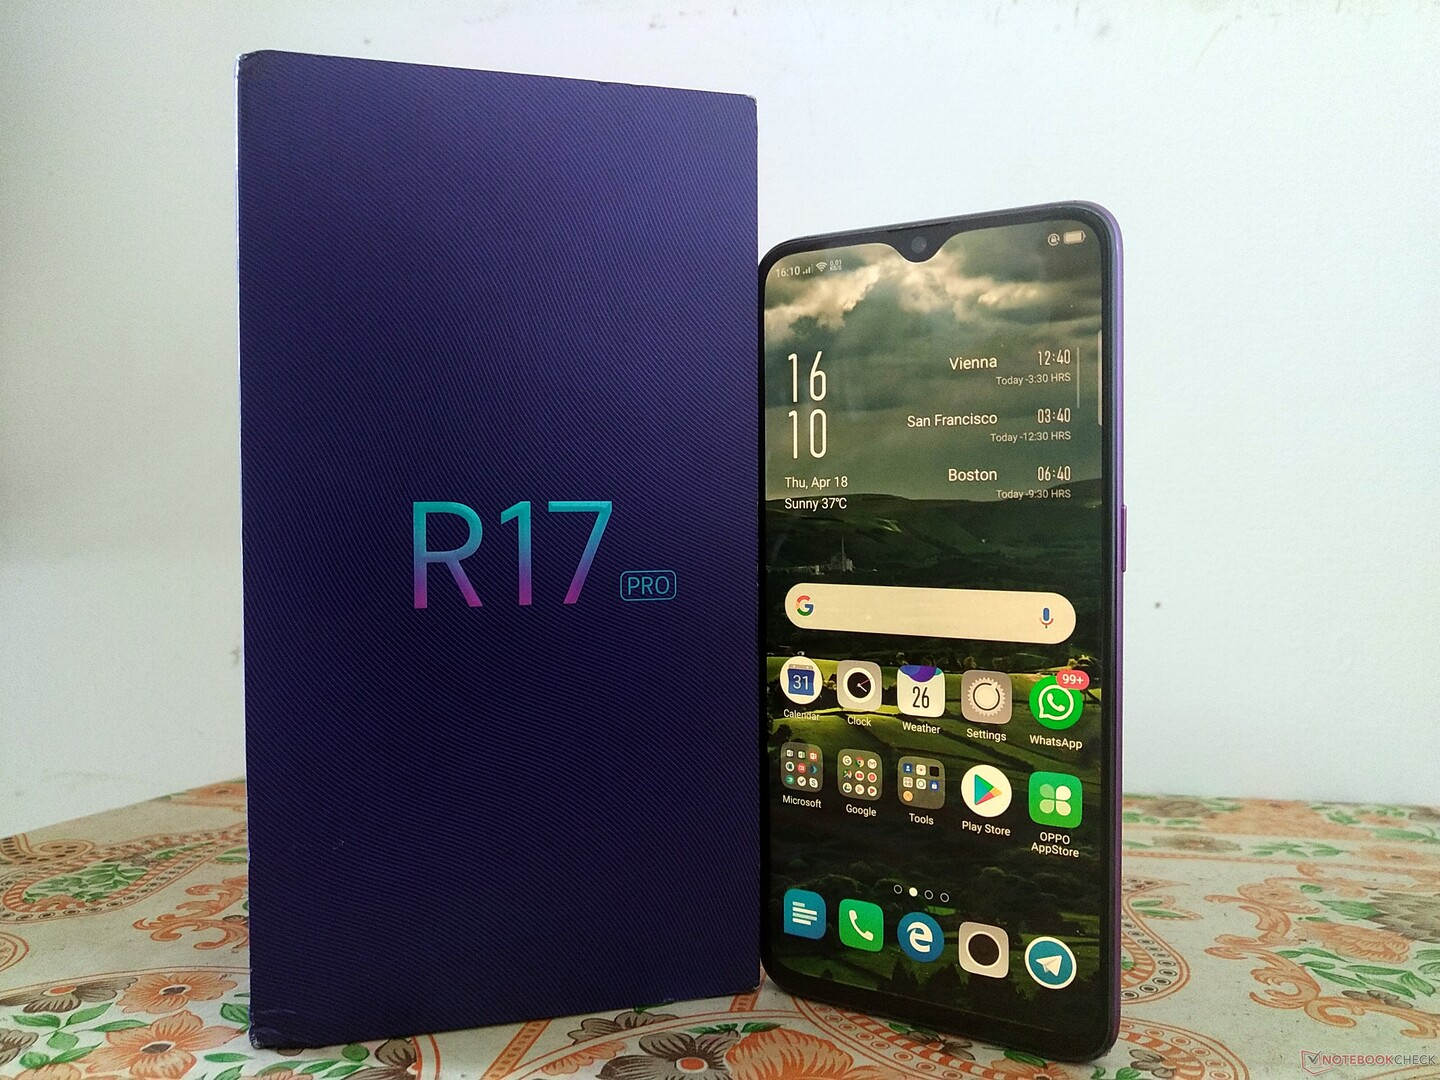 Oppo R17 Pro Smartphone Hands-on Review - NotebookCheck net Reviews